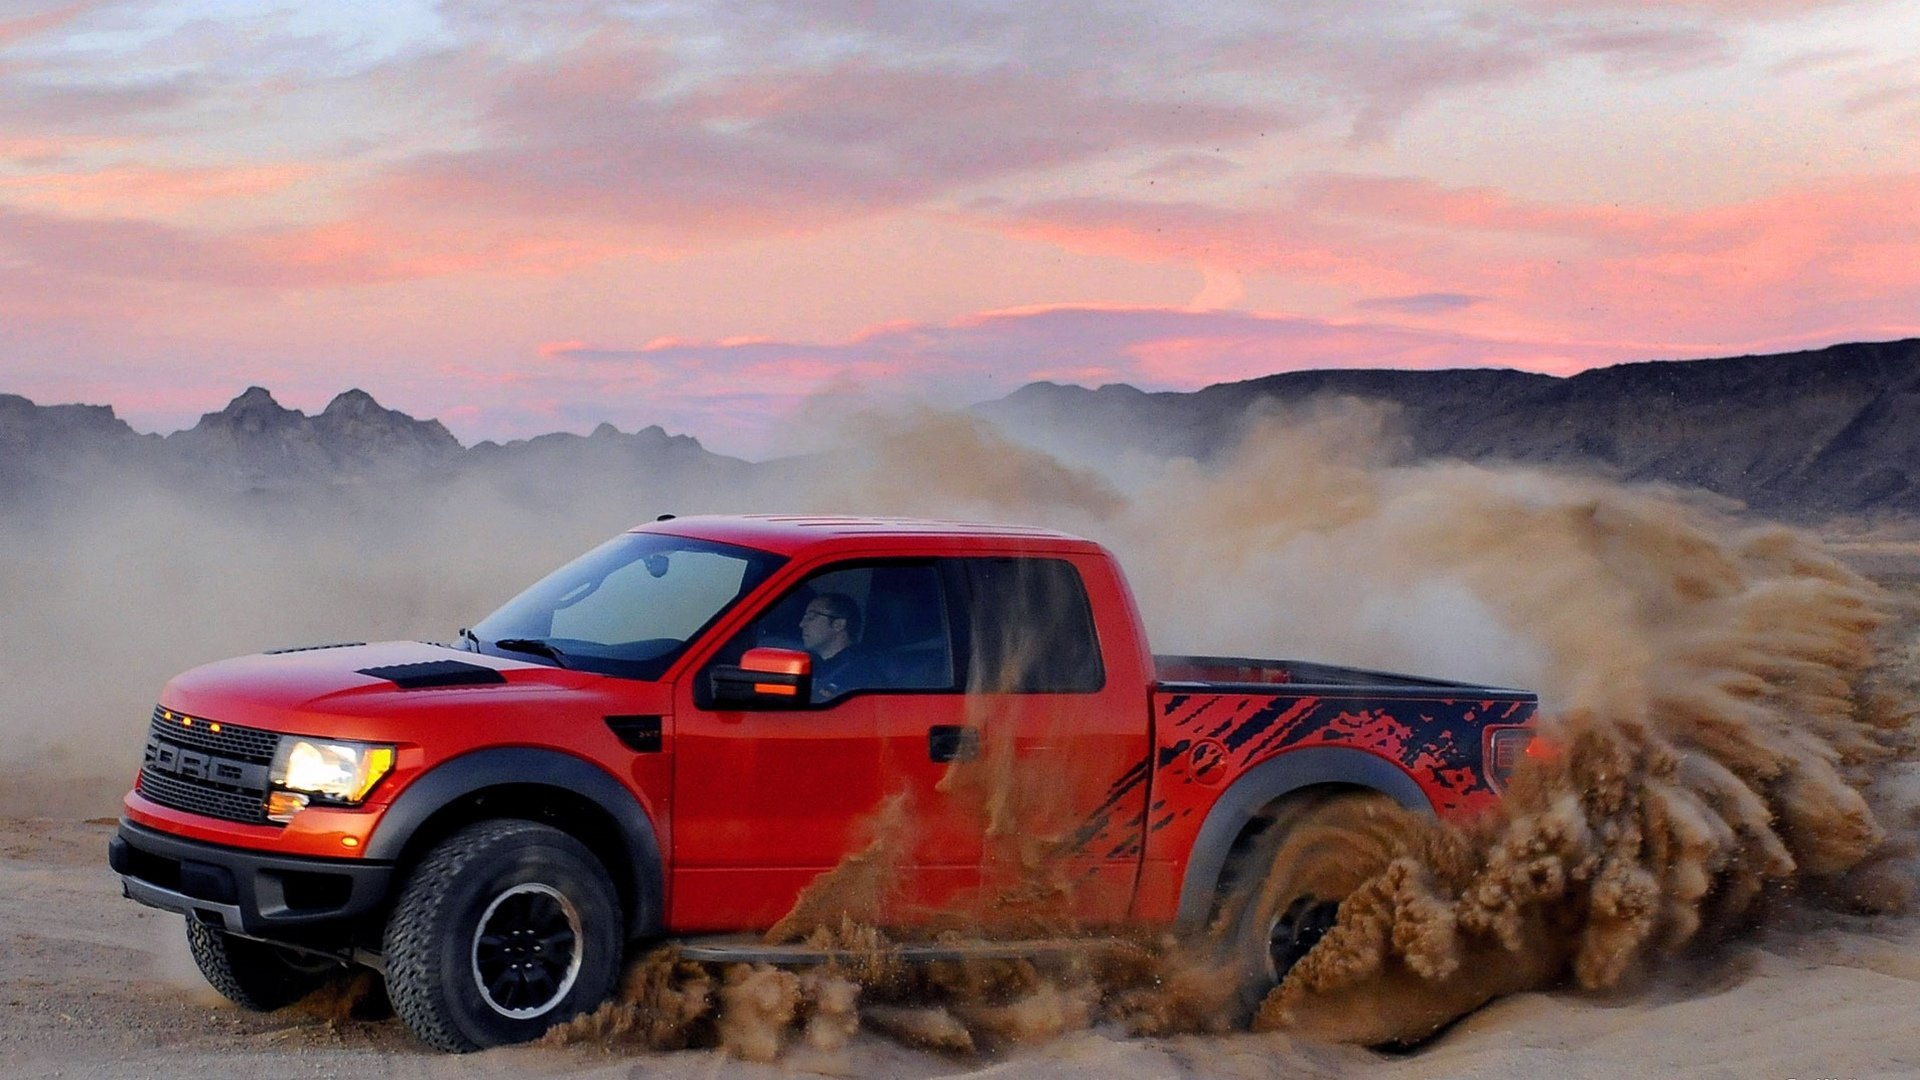 High resolution Ford Raptor full hd 1080p wallpaper ID:275767 for computer